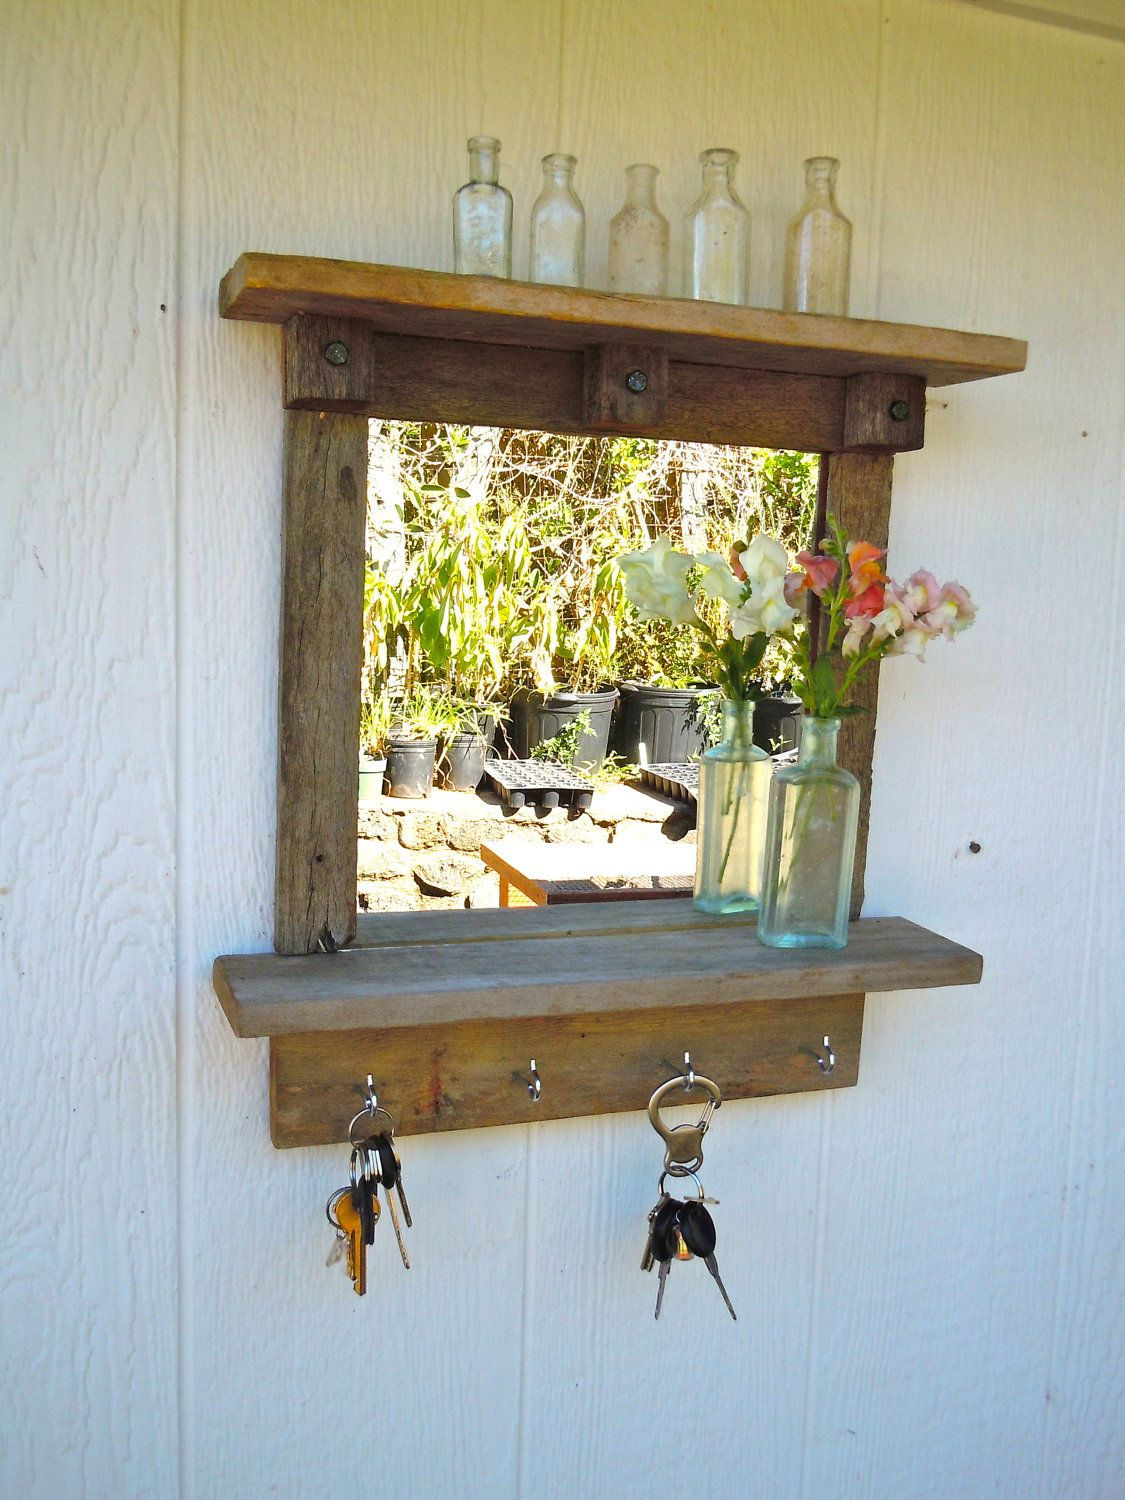 Wooden Key Holder With Shelf Reclaimed Wood Rustic Craftsman Style Mirror With Shelves